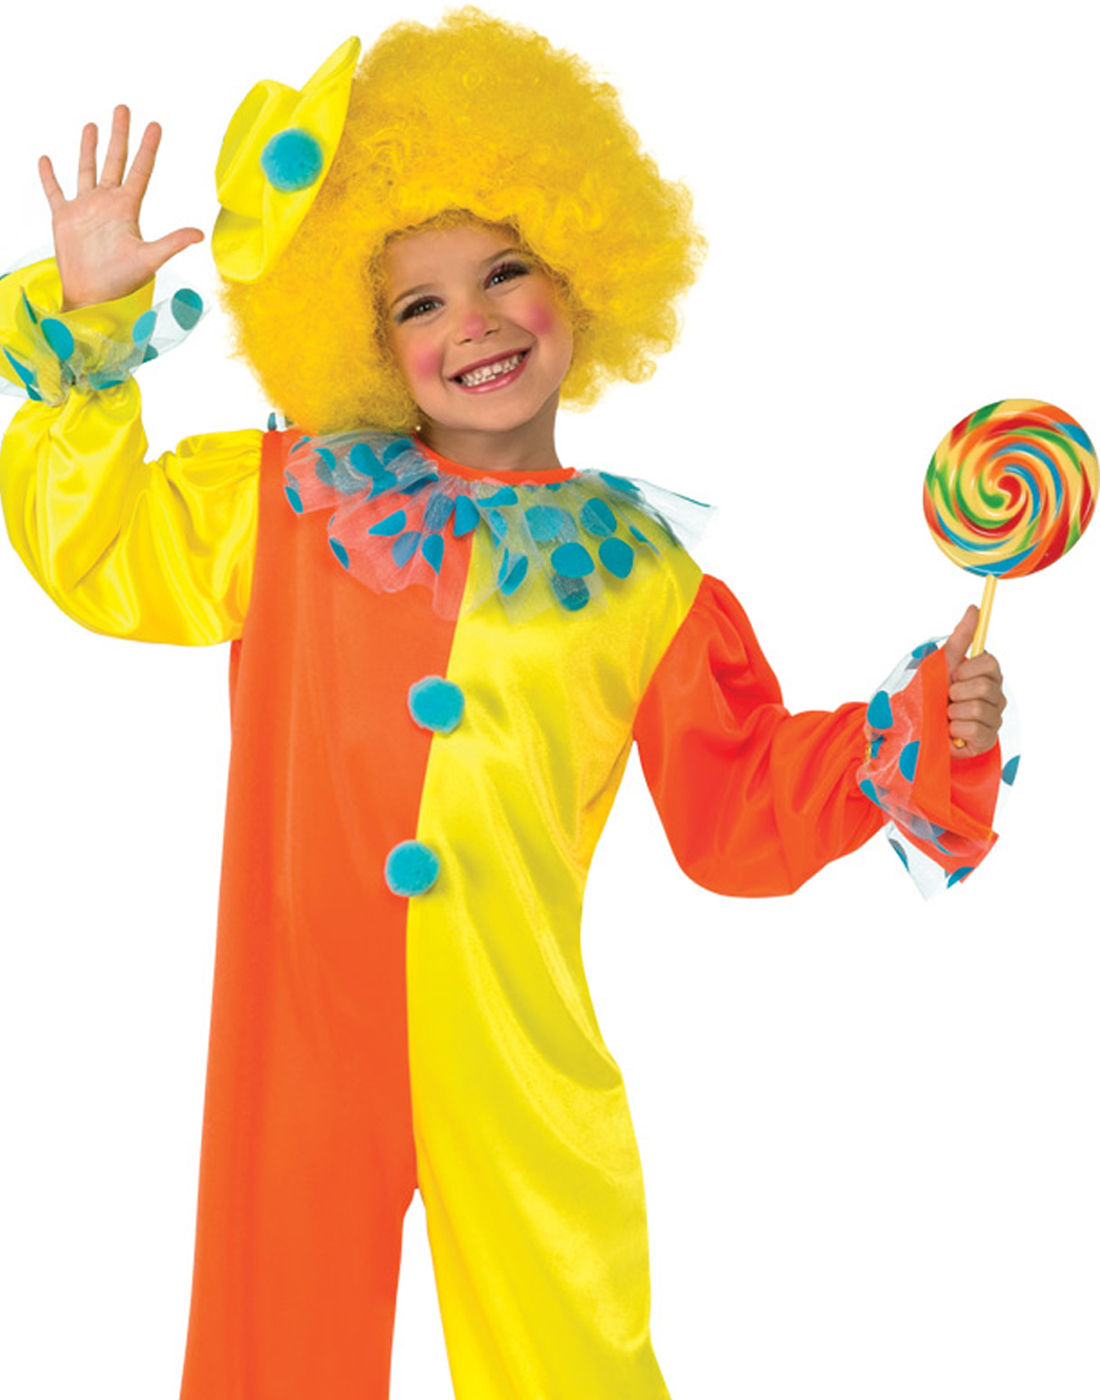 Party Clown Kids Jumpsuit Fun Toddler Halloween Fancy Dress Costume With Hat M  sc 1 st  Walmart & Clown Costume for Kids